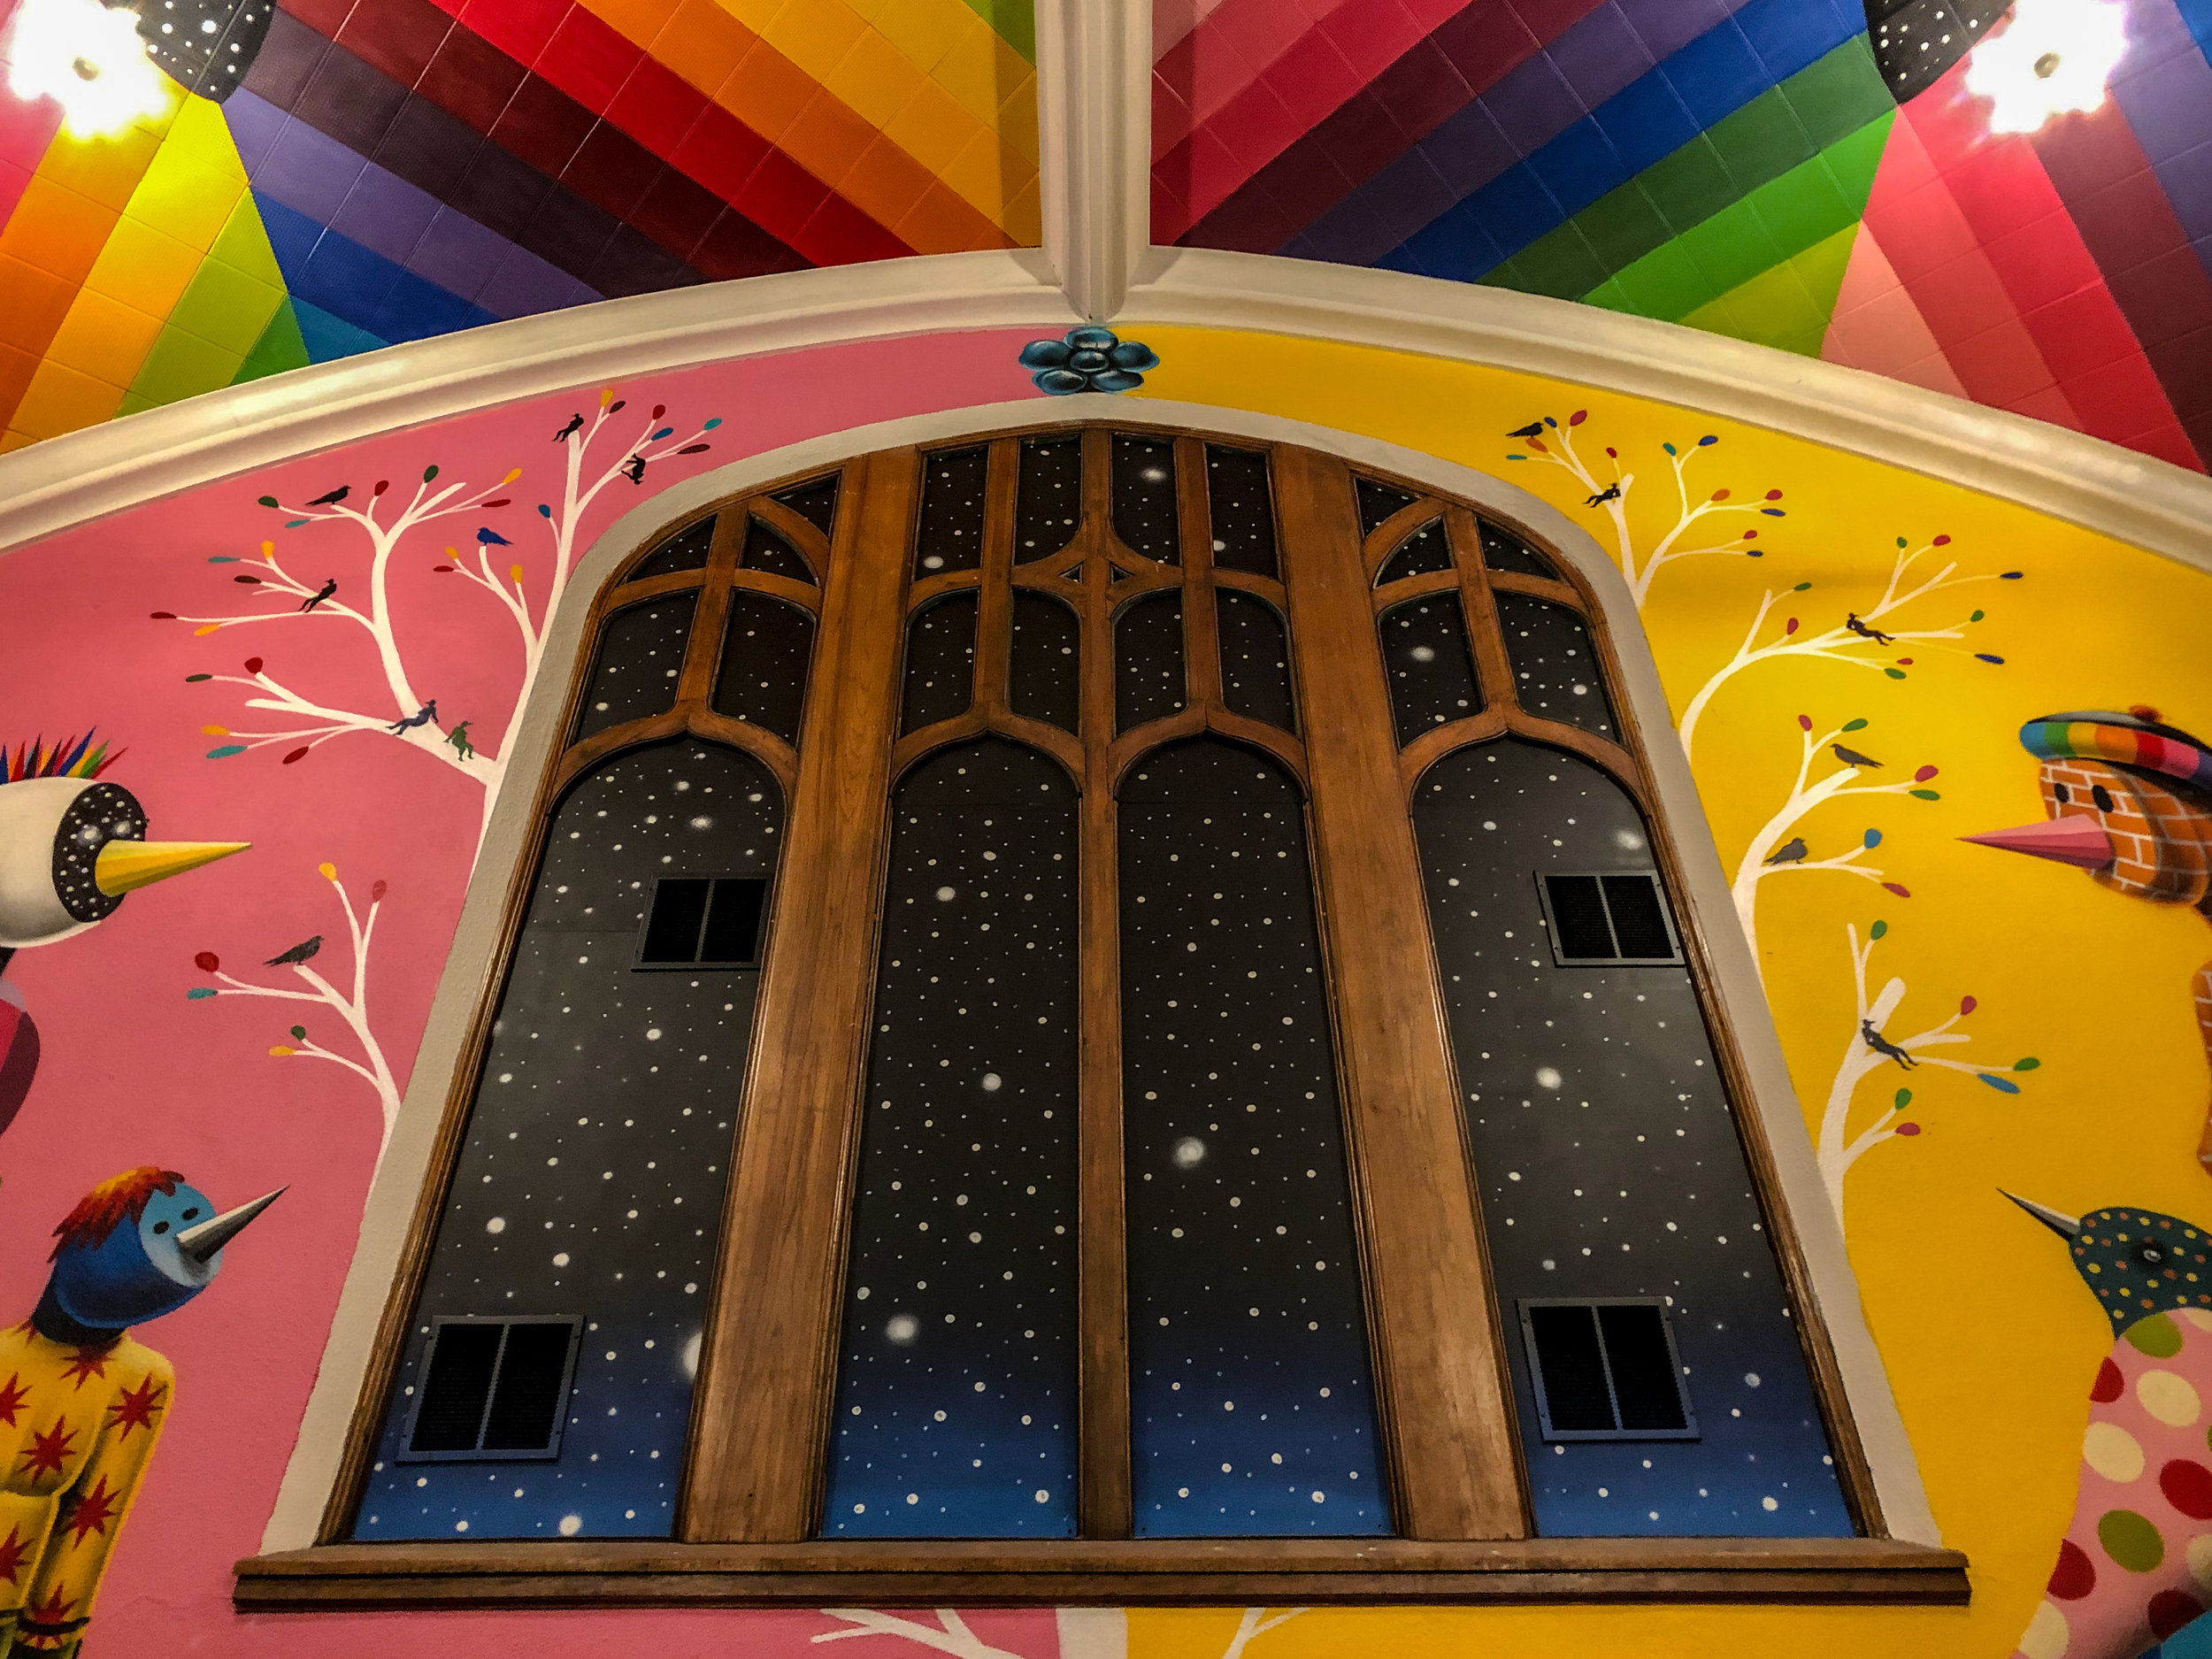 Window inside cathedral international church of cannabis.jpg